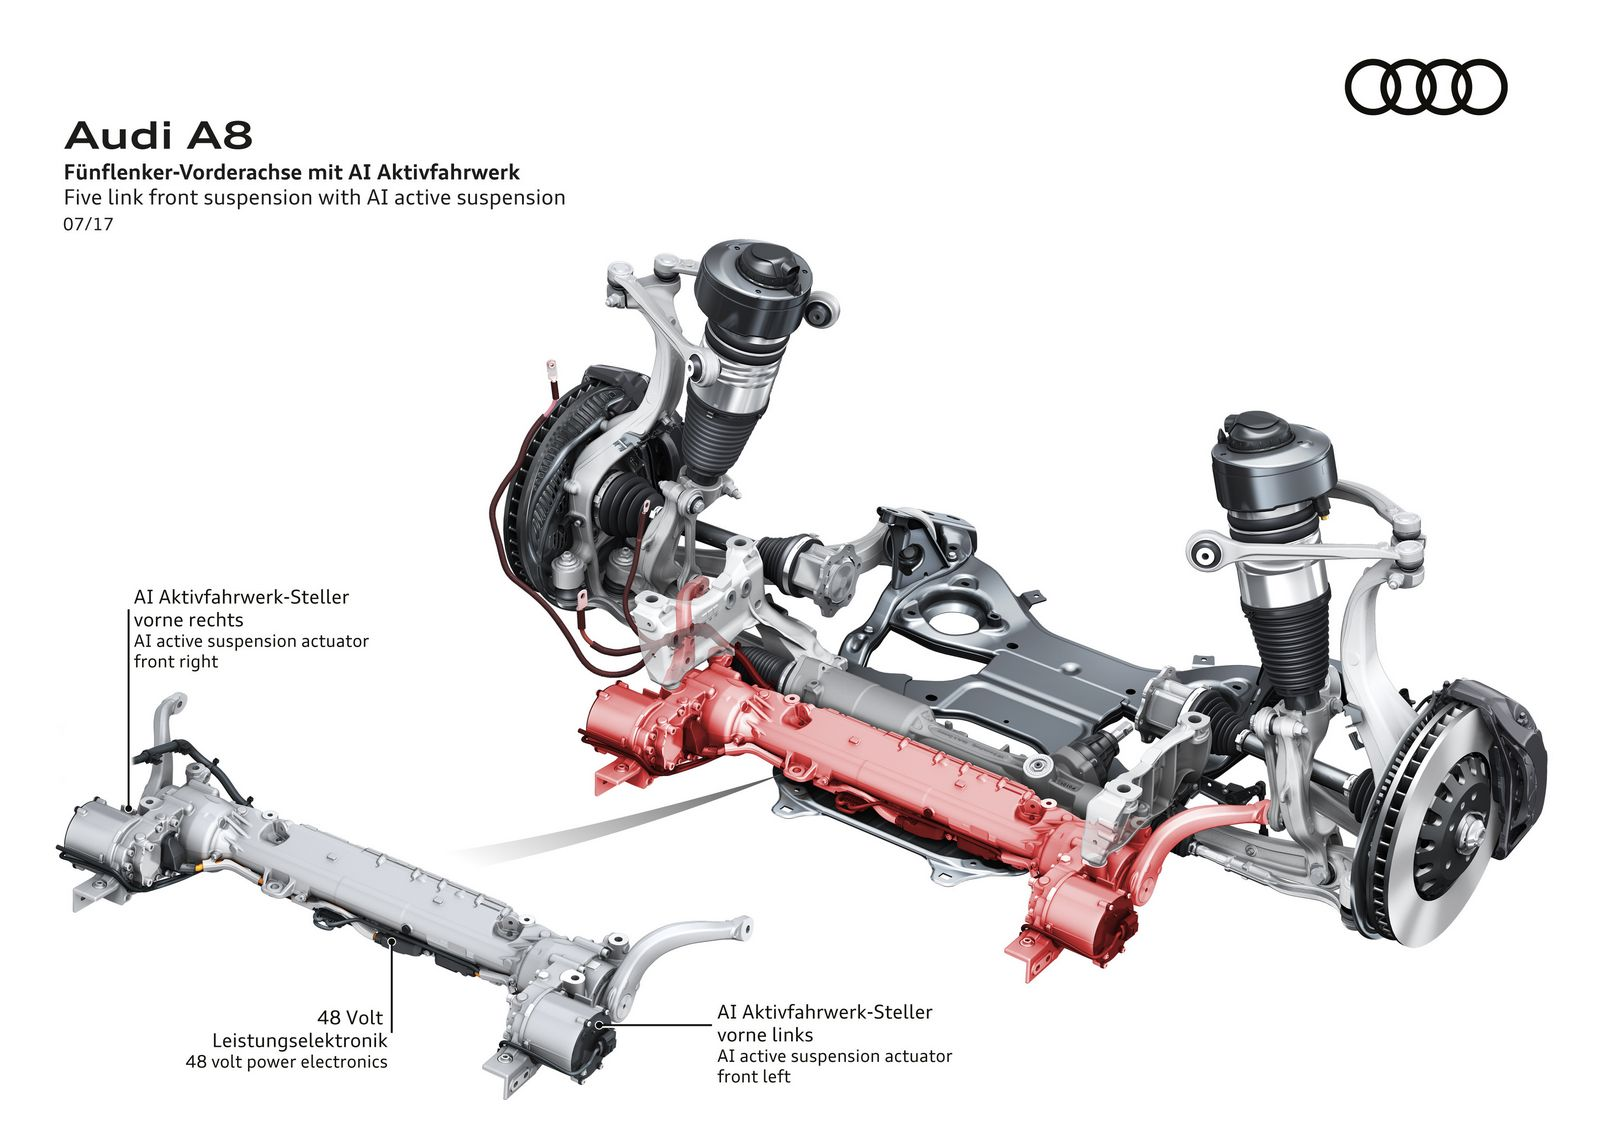 Five link front suspension with AI active suspension